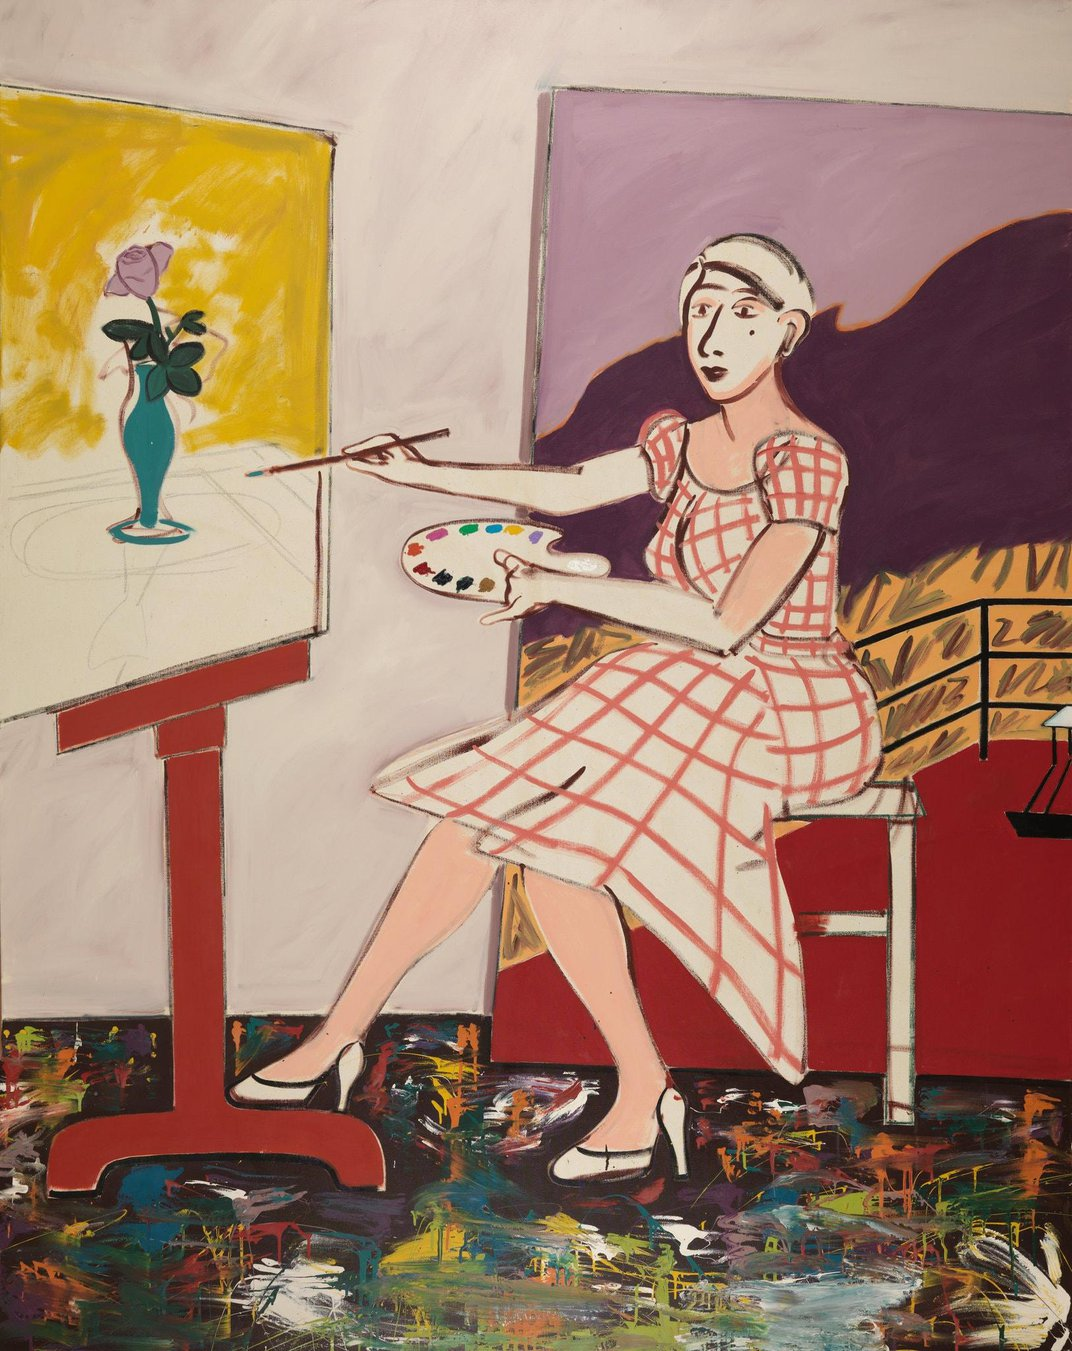 Study Shows U.S. Museums Still Lag When It Comes to Acquiring Works by Women Artists